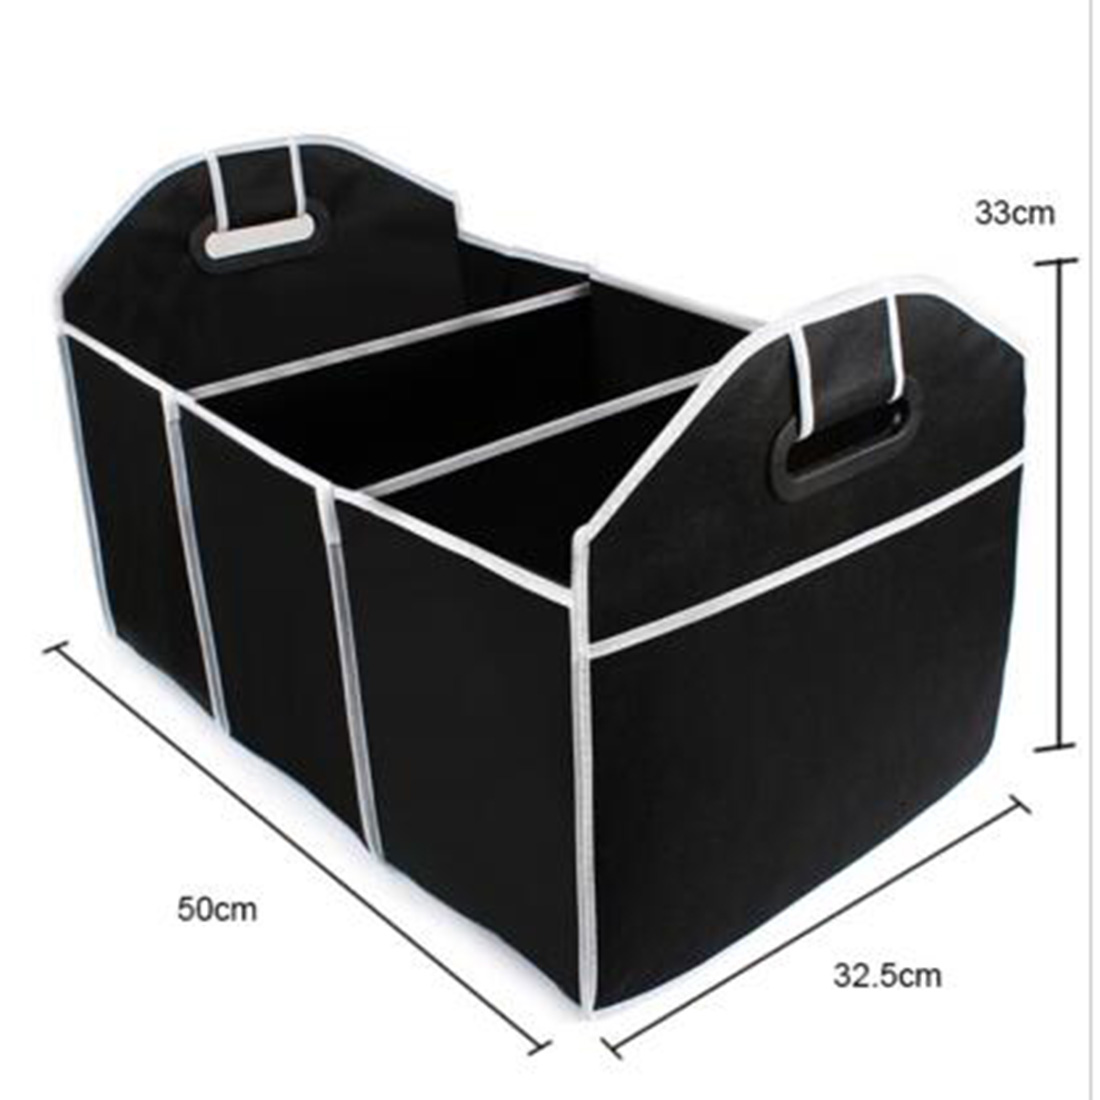 Storage Boxes & Bins Dynamic Car Trunk Organizer Car Toys Food Storage Container Bags Box Styling Auto Interior Accessories Supplies Gear Products Pretty And Colorful